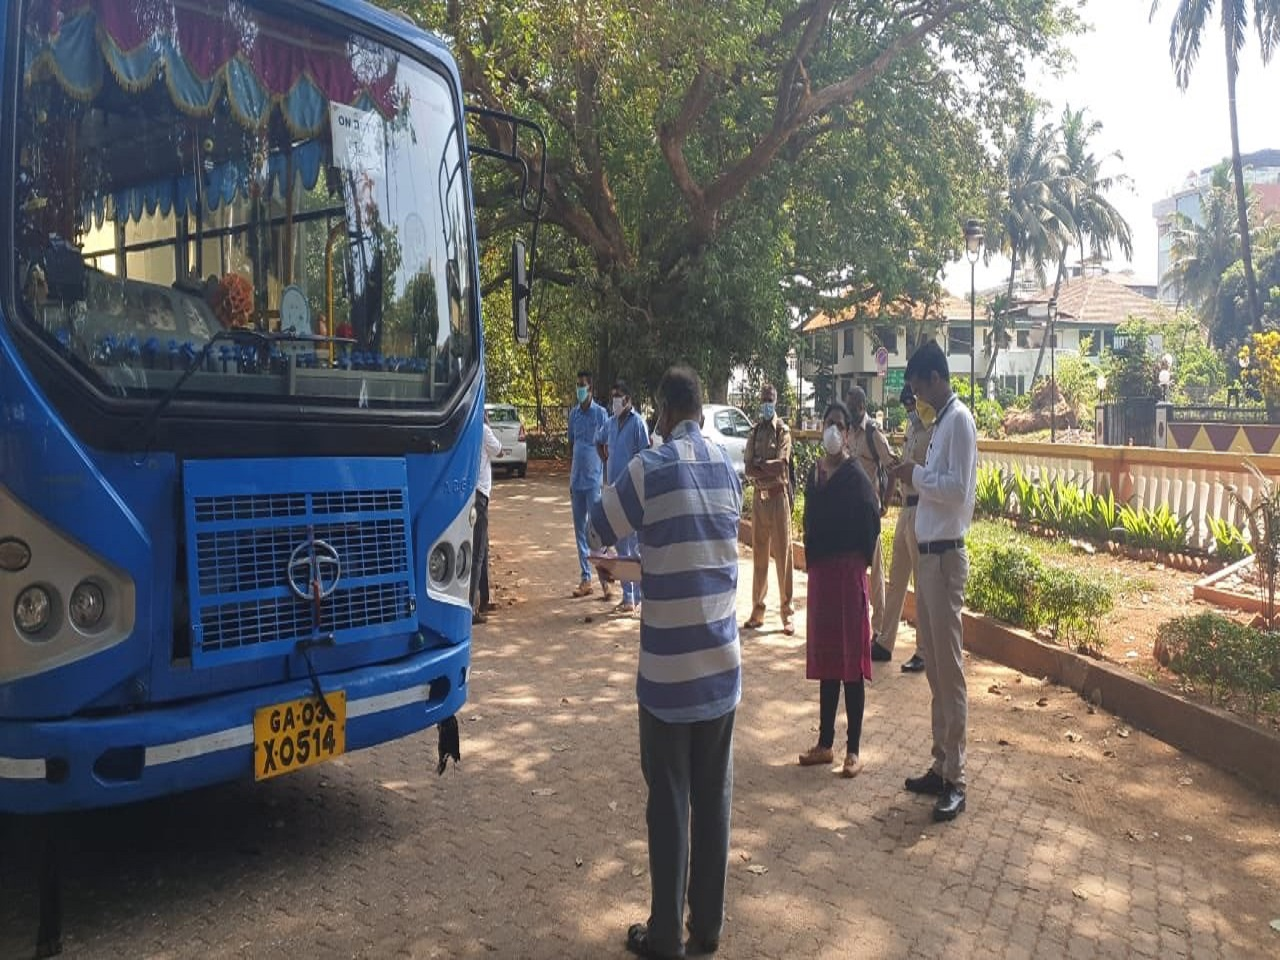 Collector North Goa, inspecting & sending off the bus loaded with Essentials for the needy